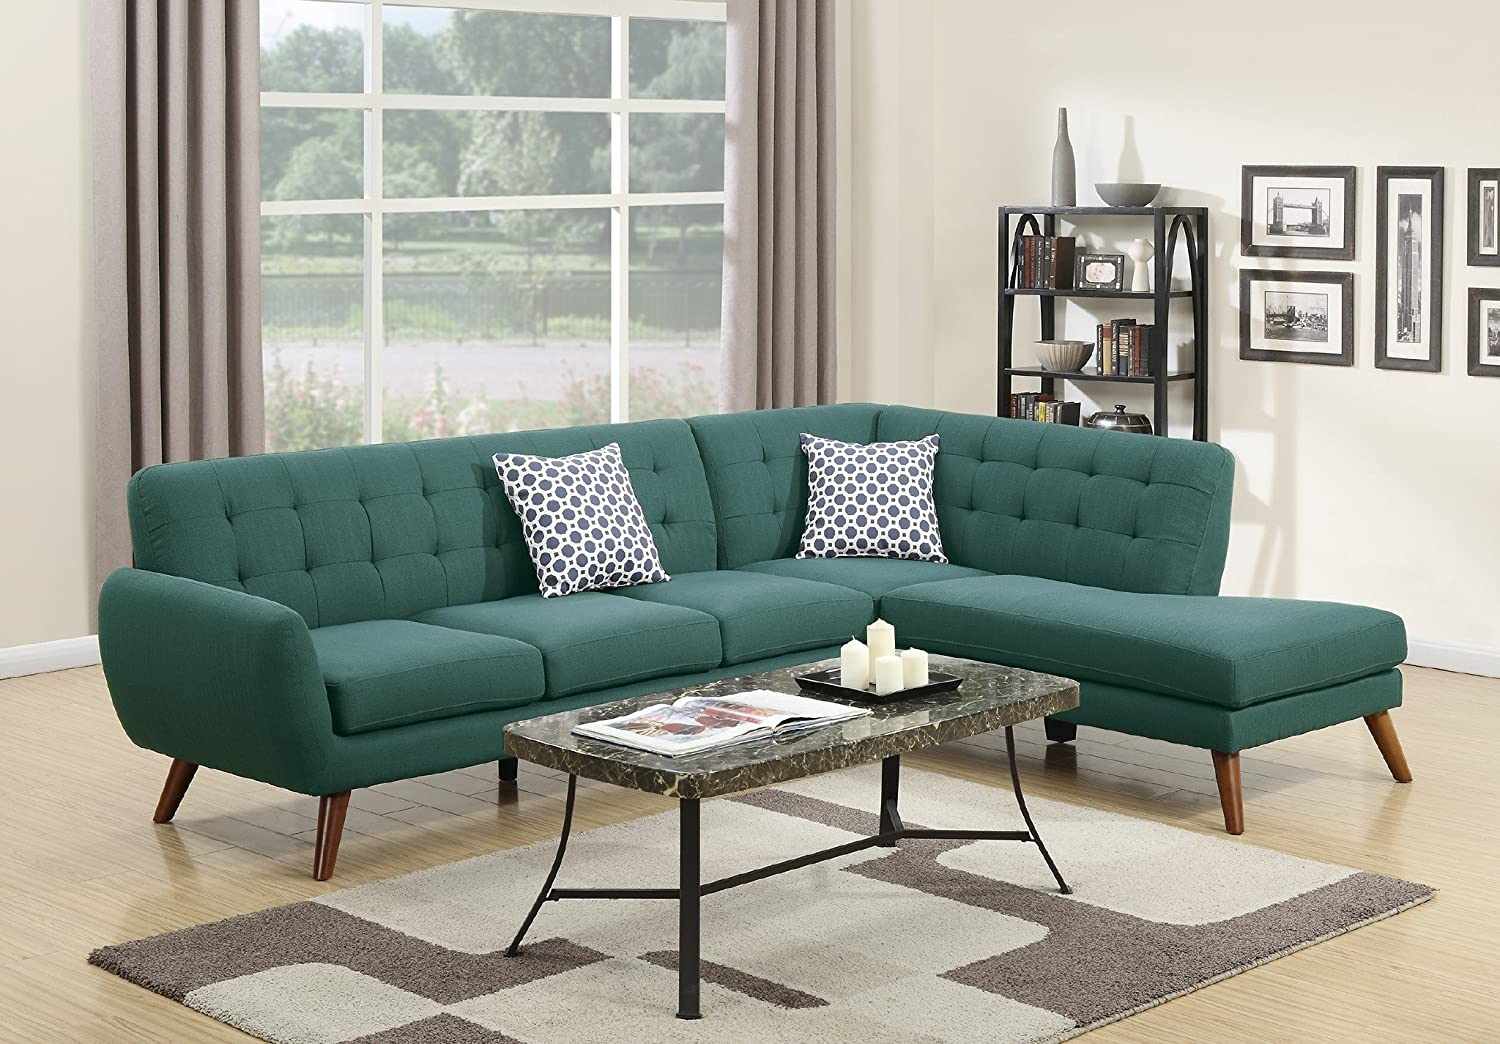 Amazon Modern Retro Sectional Sofa Laguna Kitchen & Dining